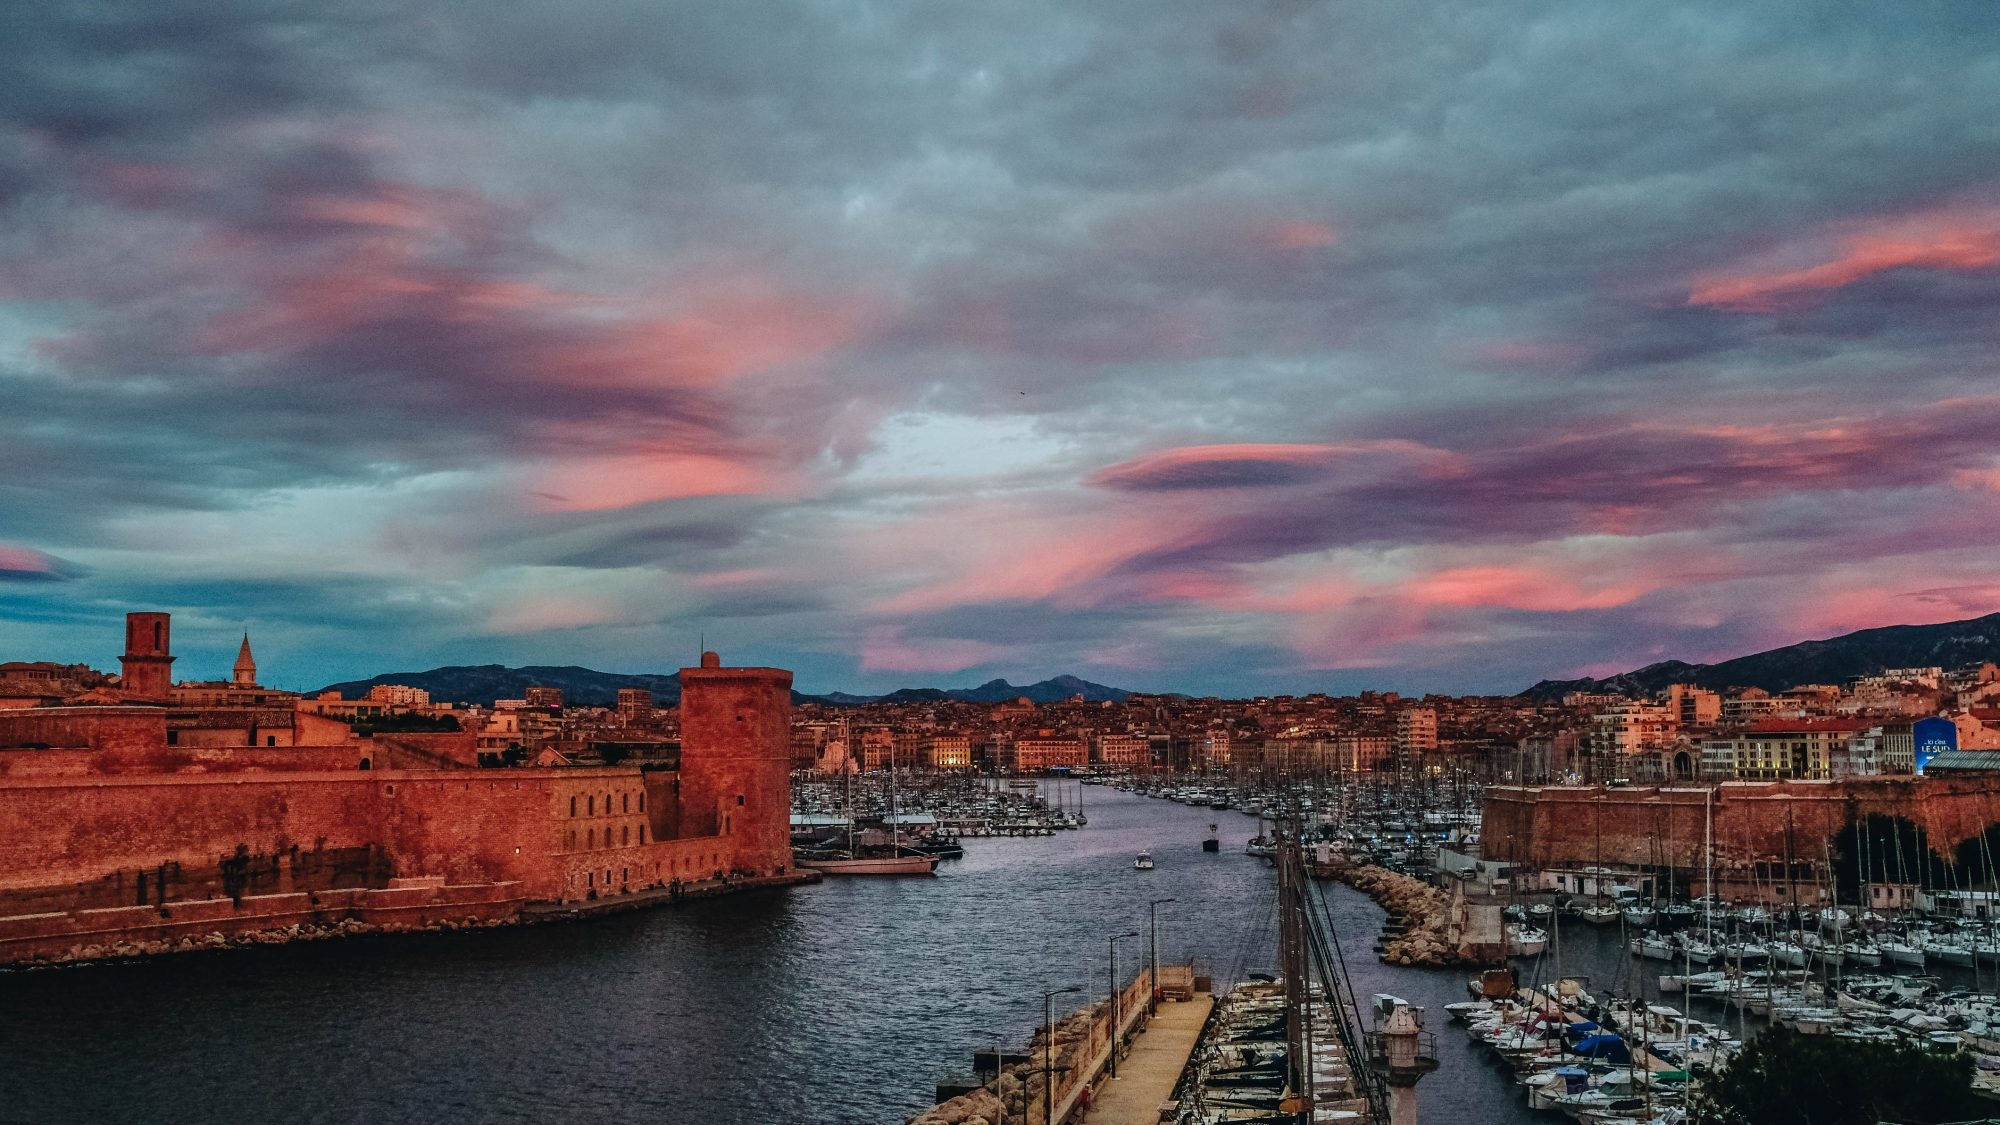 Sky is on fire Marseille Vieux Port